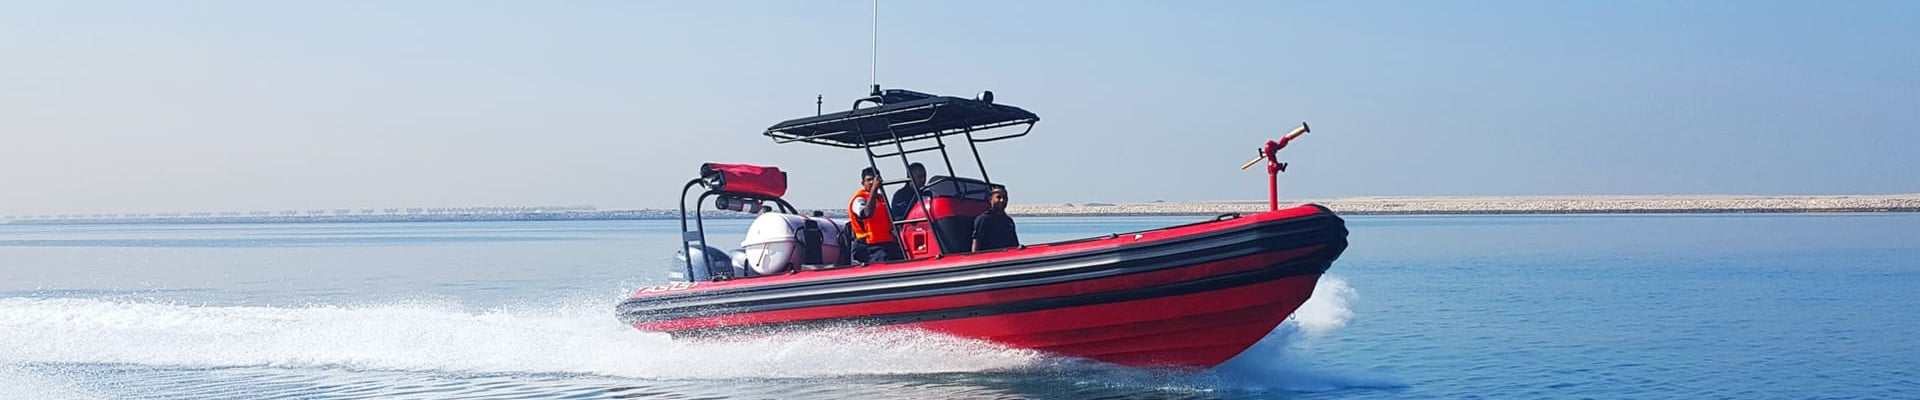 fire-rescue-rigid-inflatable-boats (1)